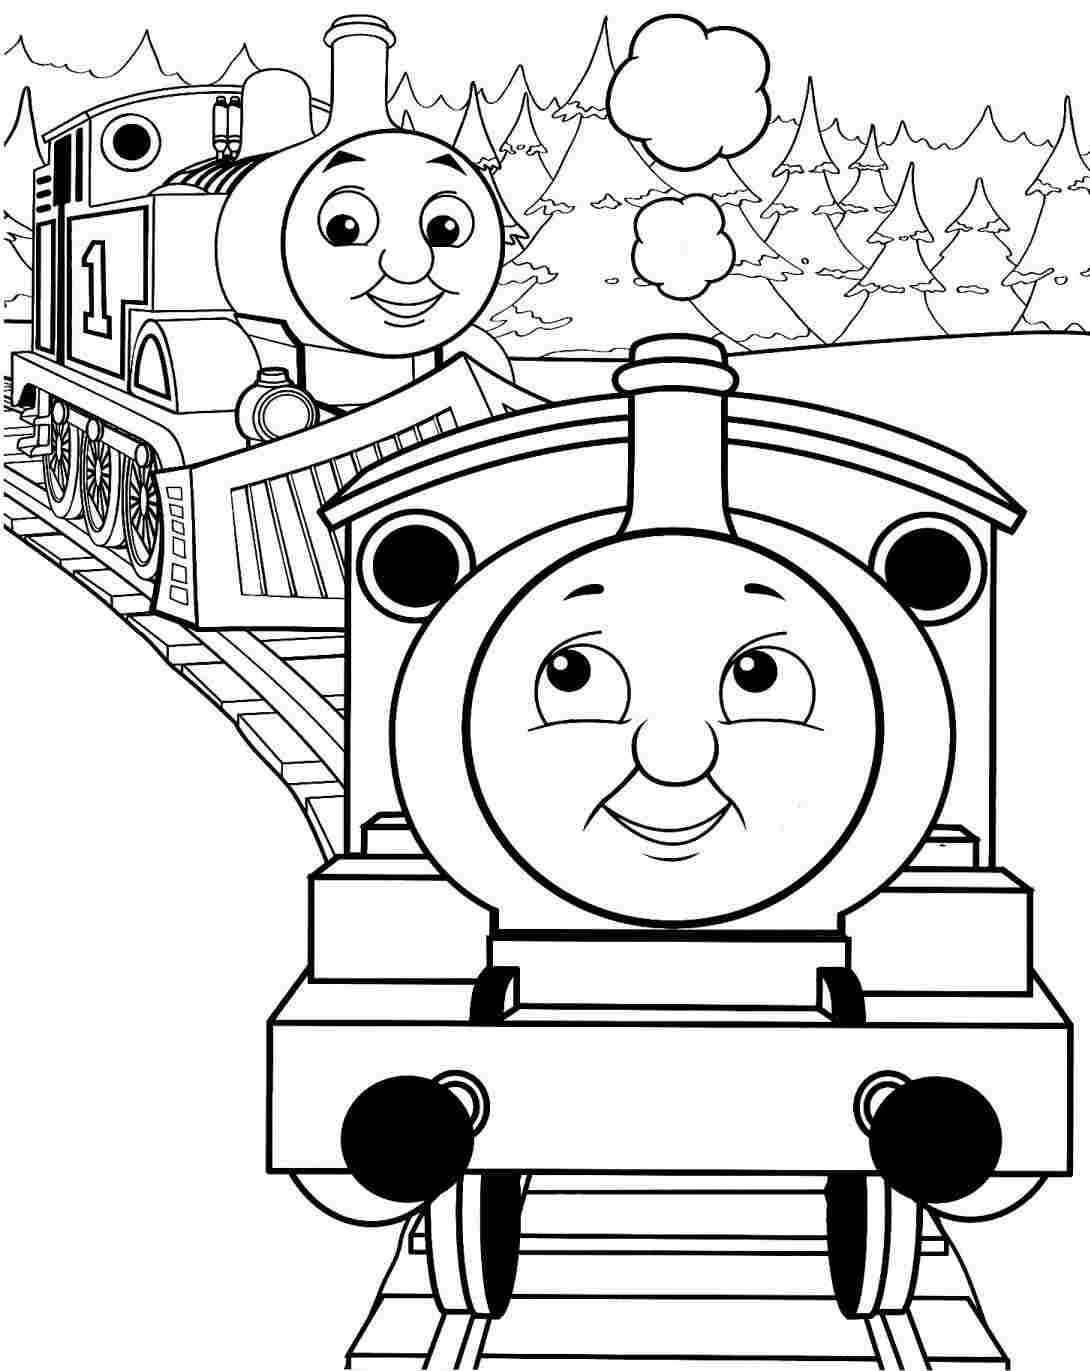 colouring pages thomas the tank engine thomas friends coloring pages free printable thomas the tank pages thomas engine colouring